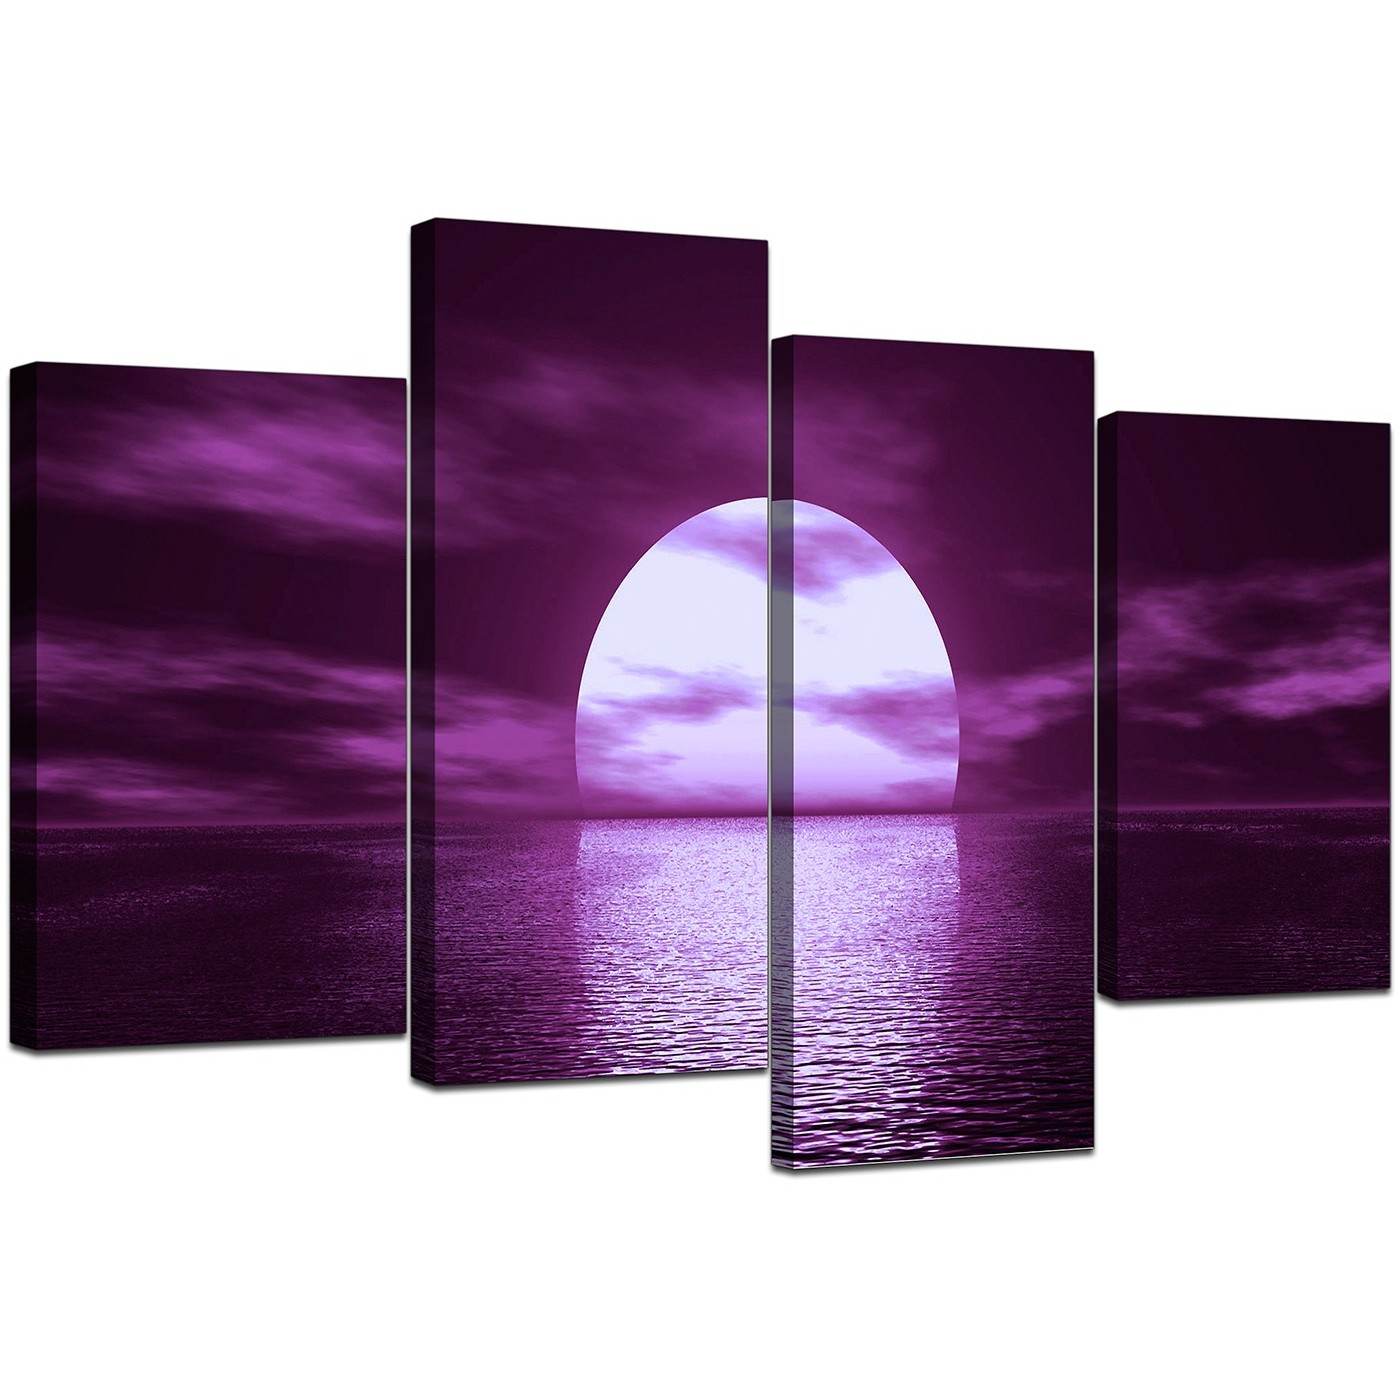 Sunset Seascape Canvases In Purple For Bedroom